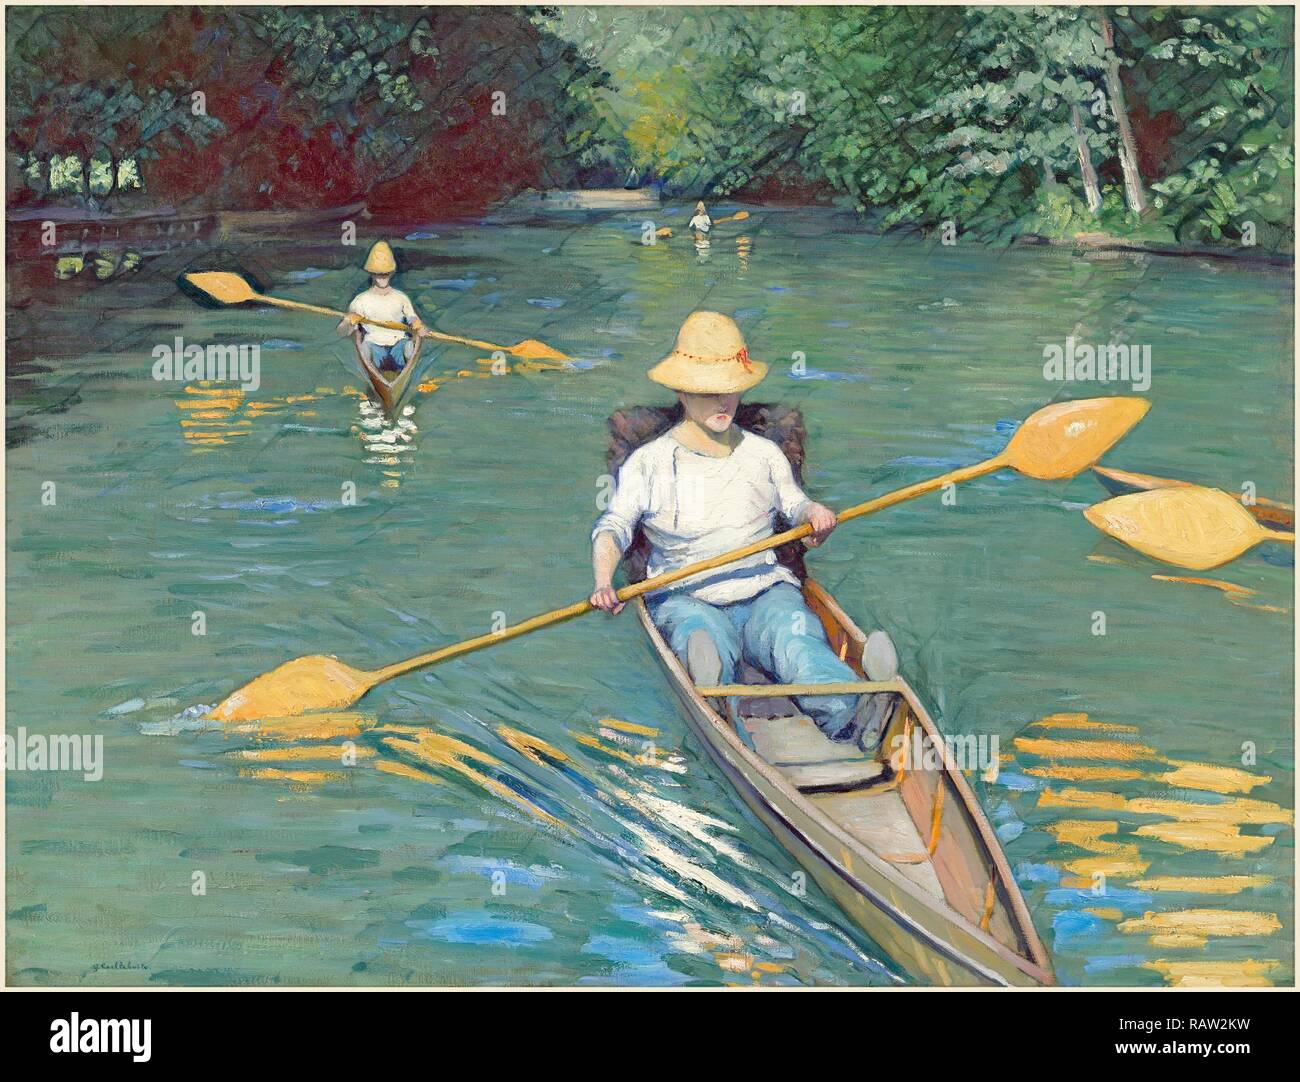 Gustave Caillebotte, French (1848-1894), Skiffs, 1877, oil on canvas. Reimagined by Gibon. Classic art with a modern reimagined - Stock Image